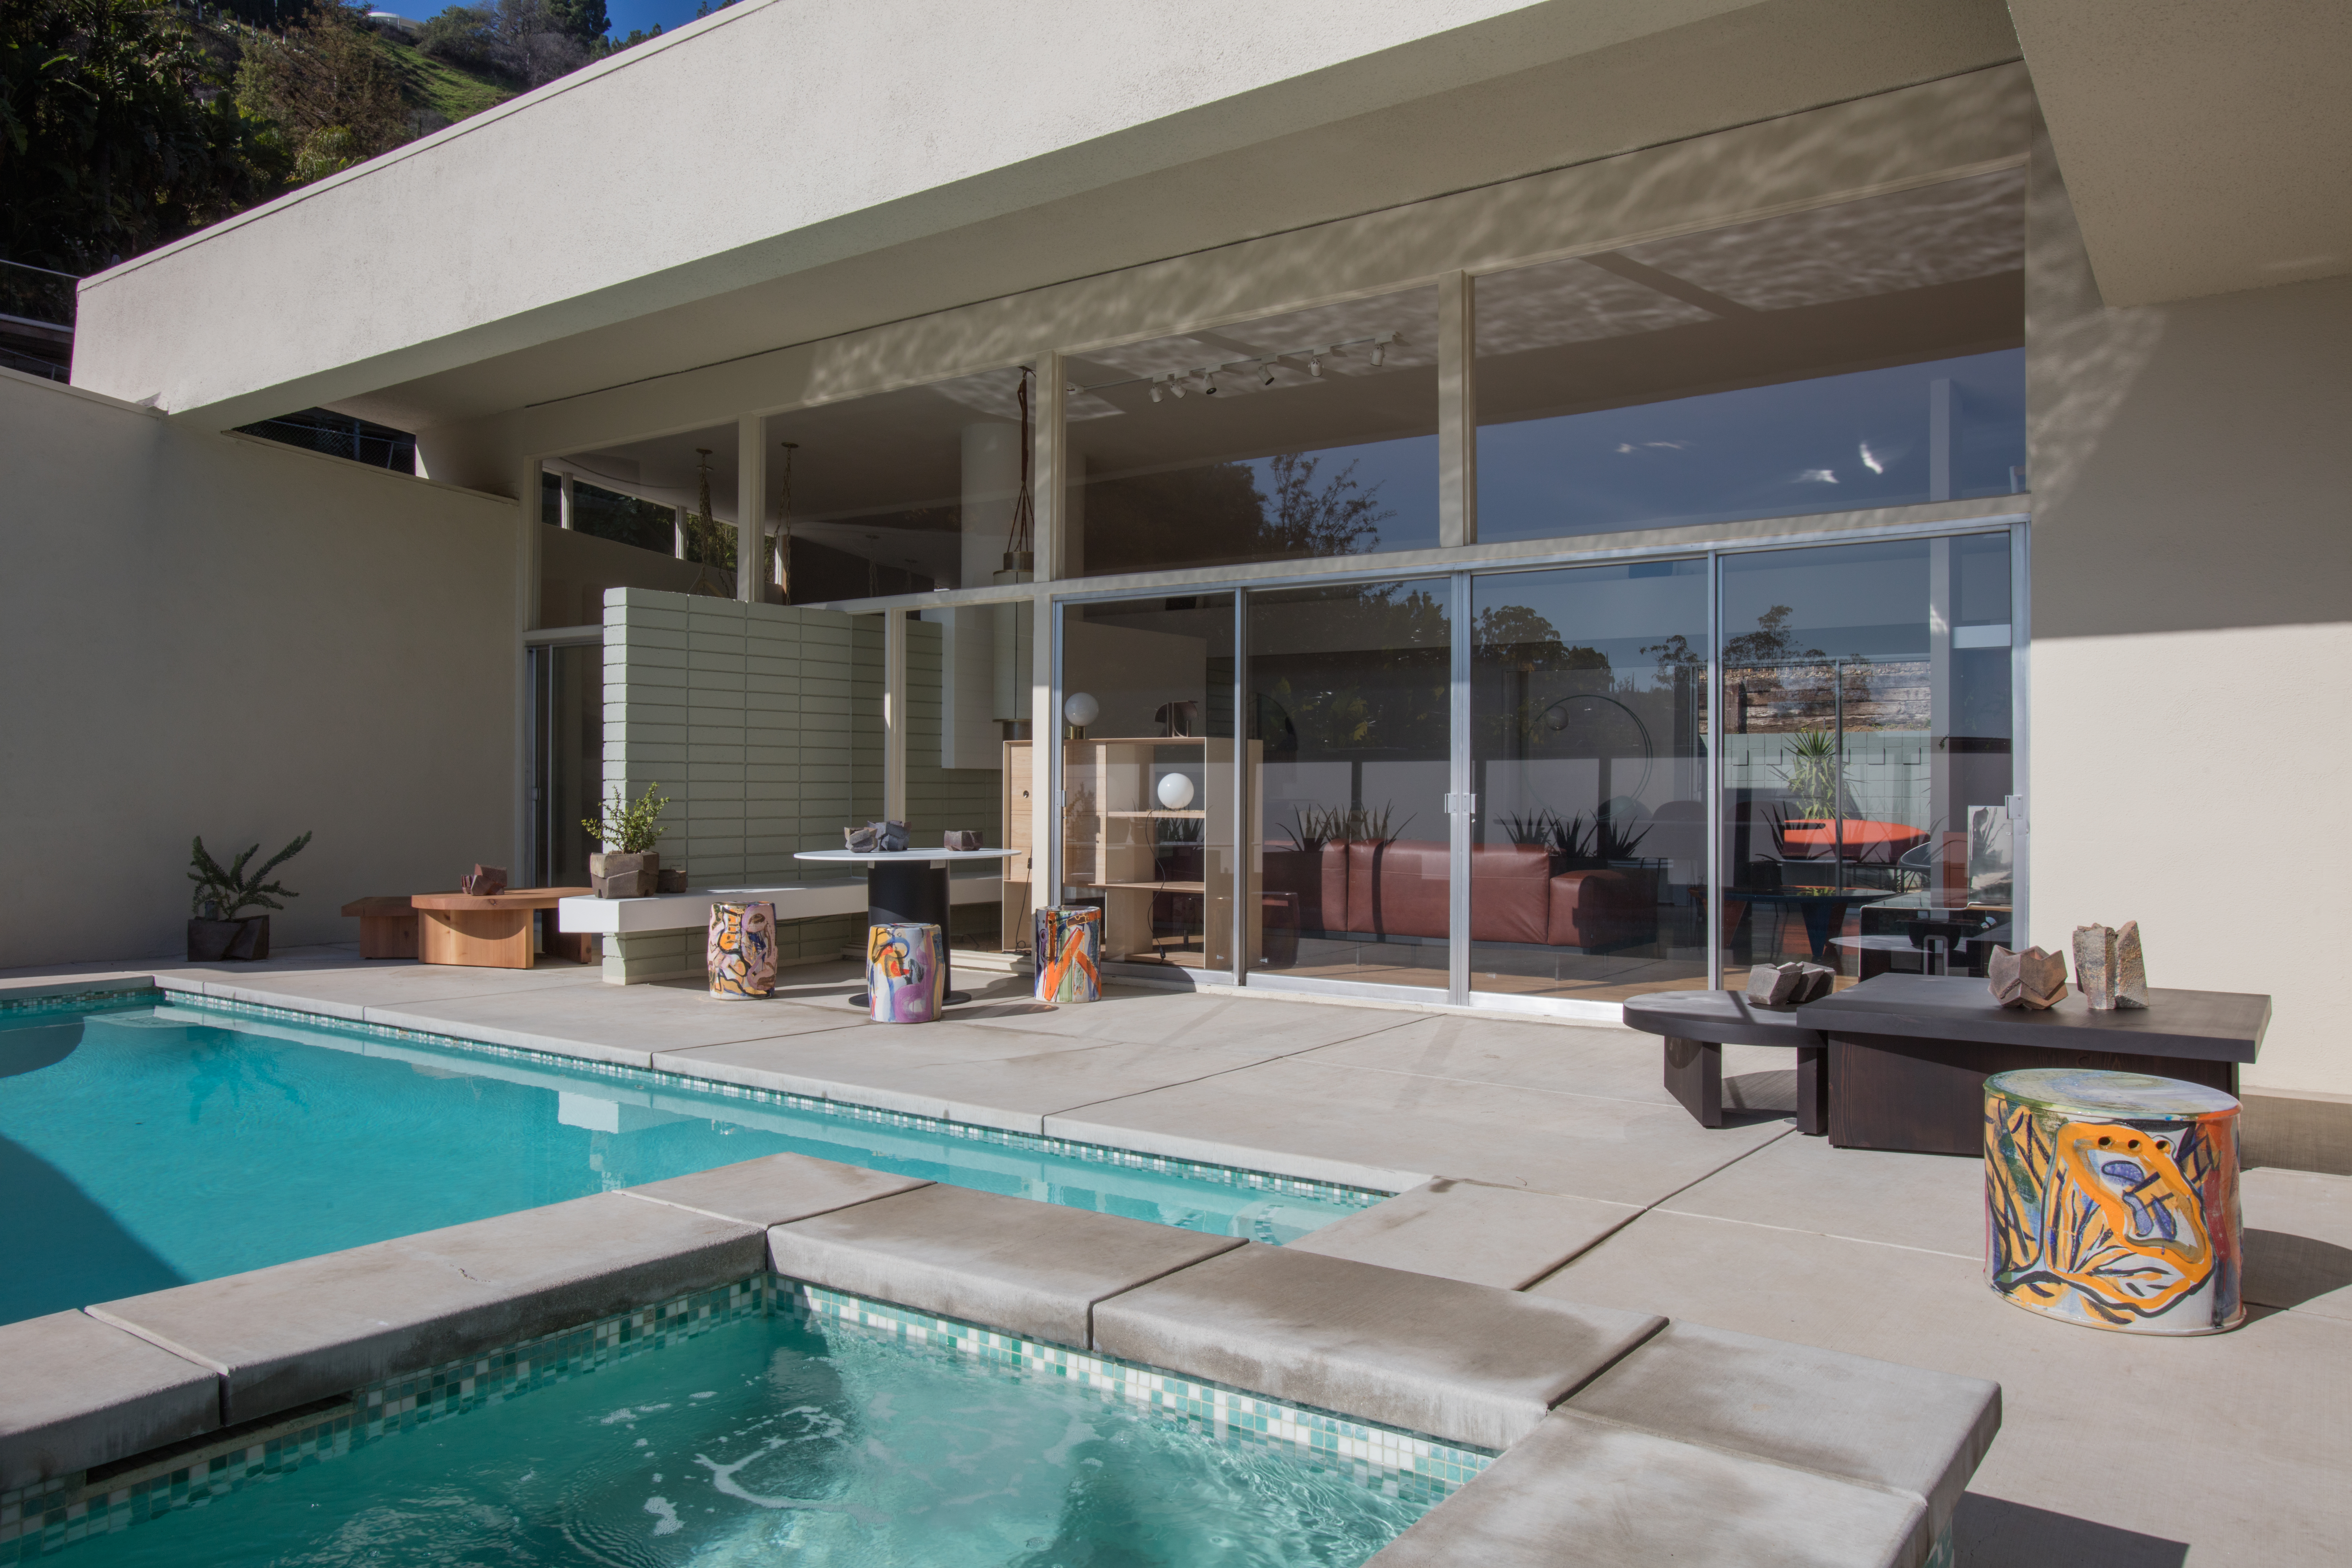 Exterior shot of low-slung white frame house with wall of windows off the living room looking out onto a pool, with various furniture and design objects populating the space both inside and out.